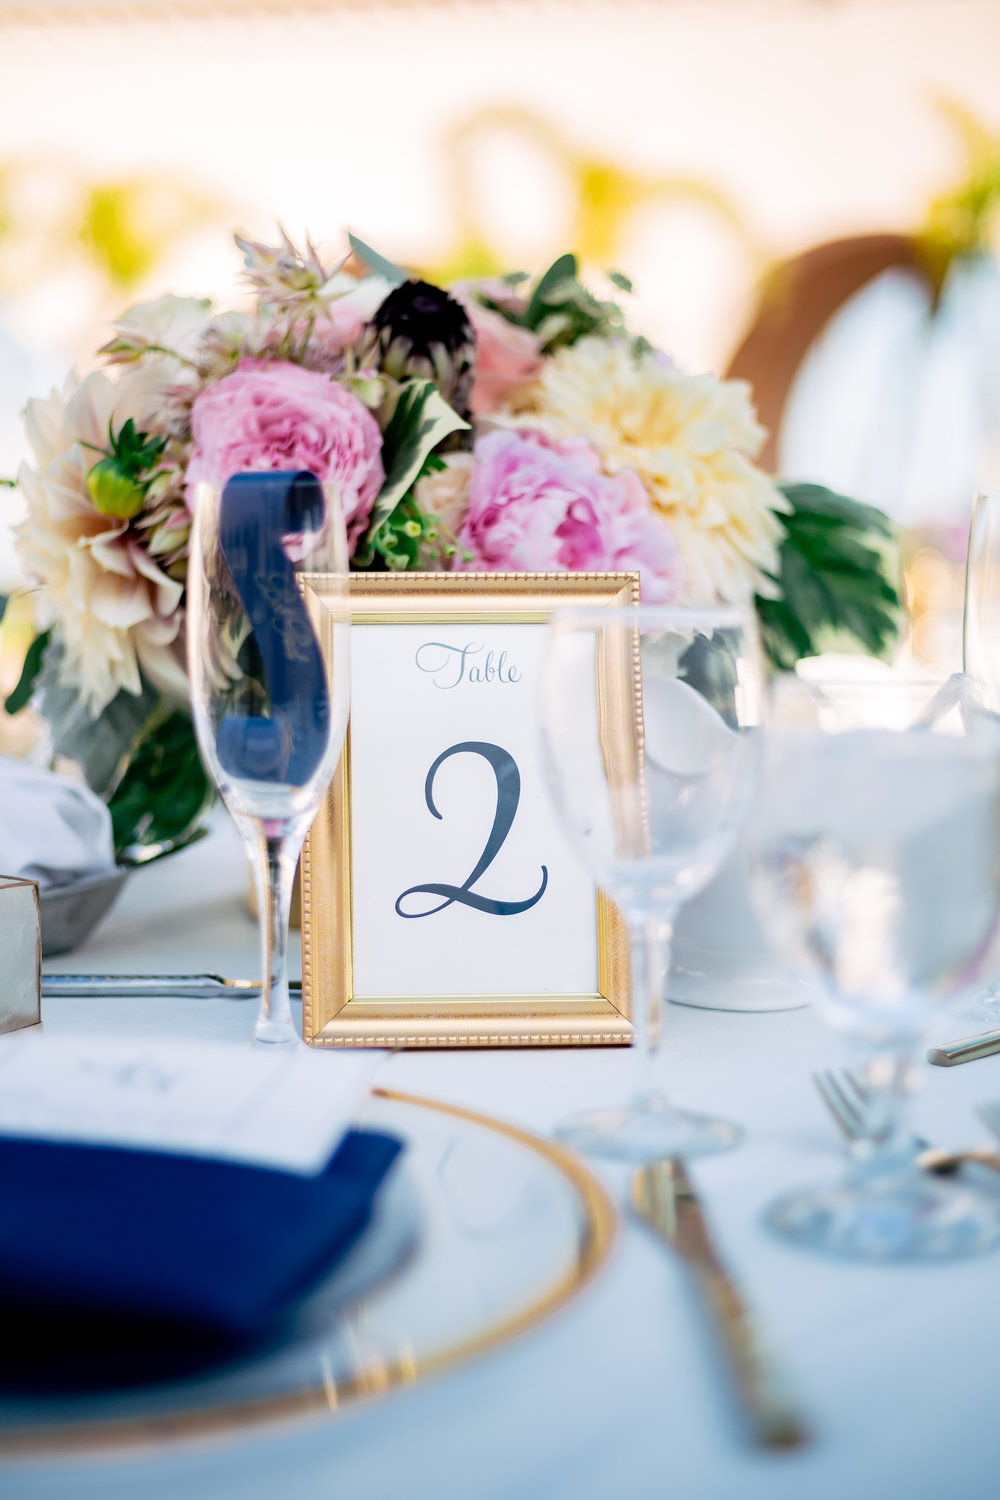 www.santabarbarawedding.com | Rewind Photography | Hilton Santa Barbara Beachfront Resort | Events by M and M | Reception table numbers